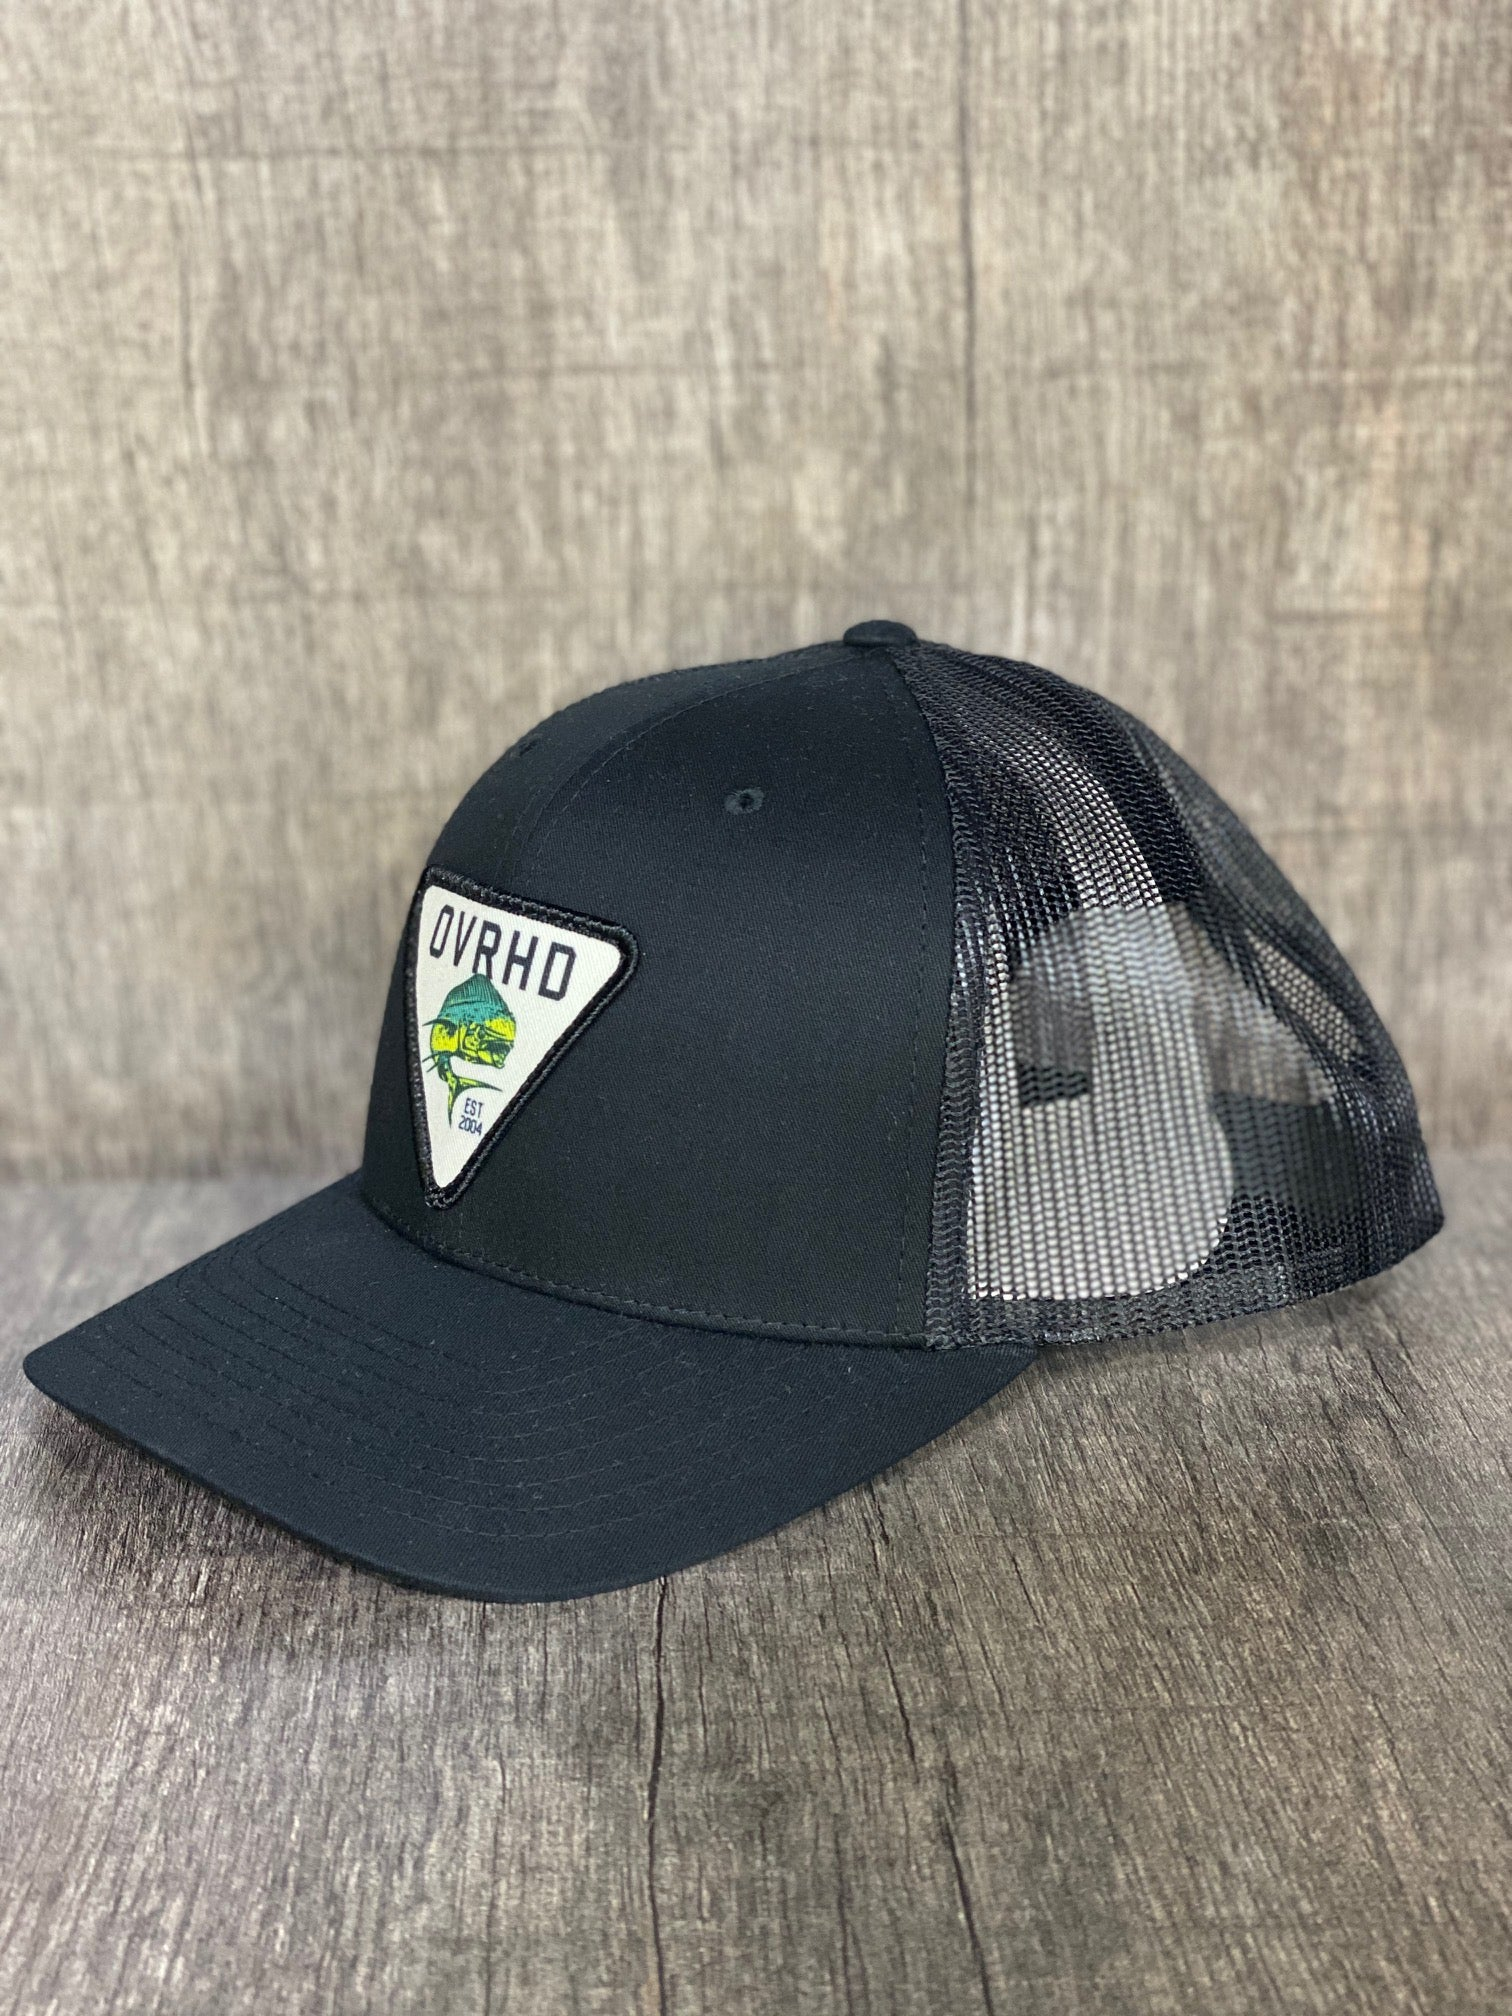 Mahi Trucker Hat in Black